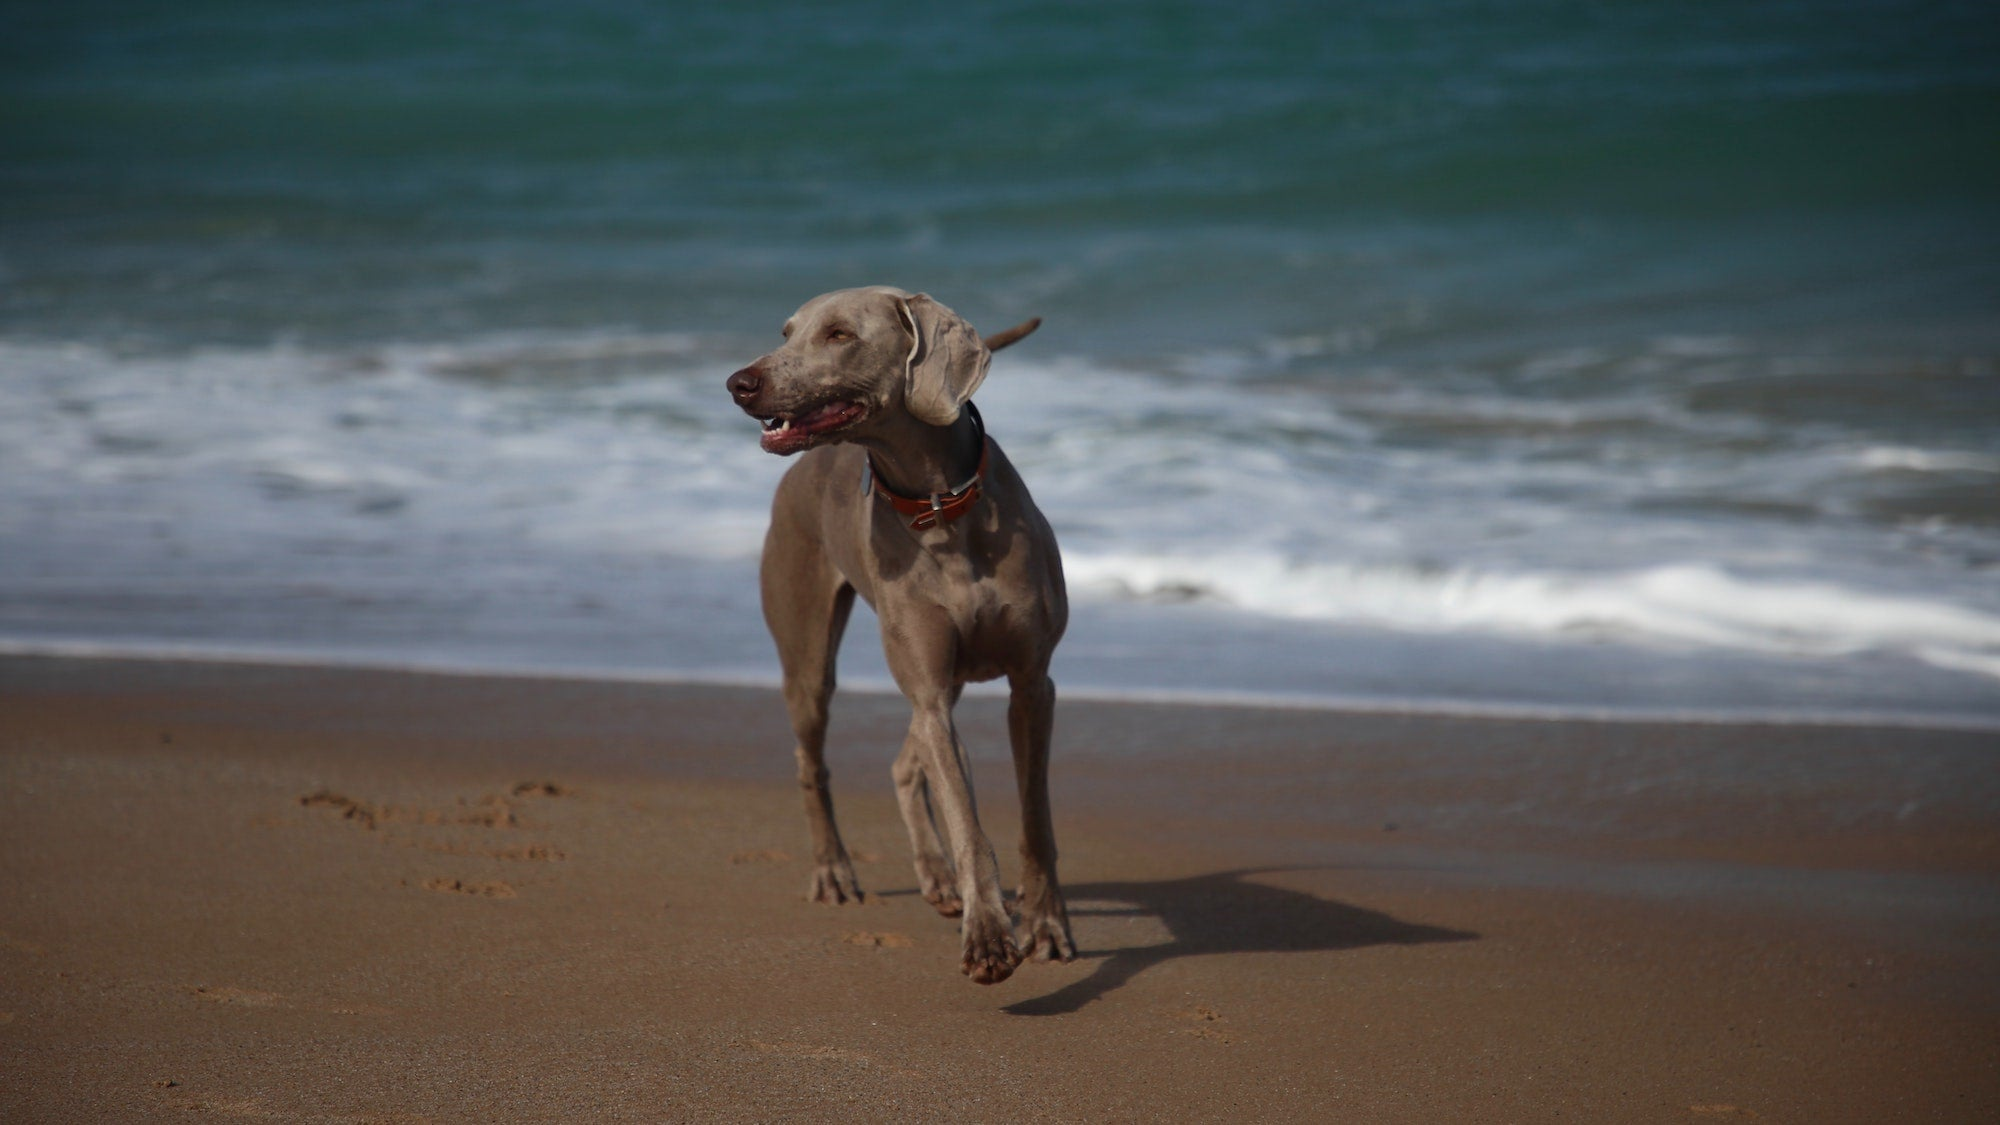 Weimaraner dog walking by sea on the beach